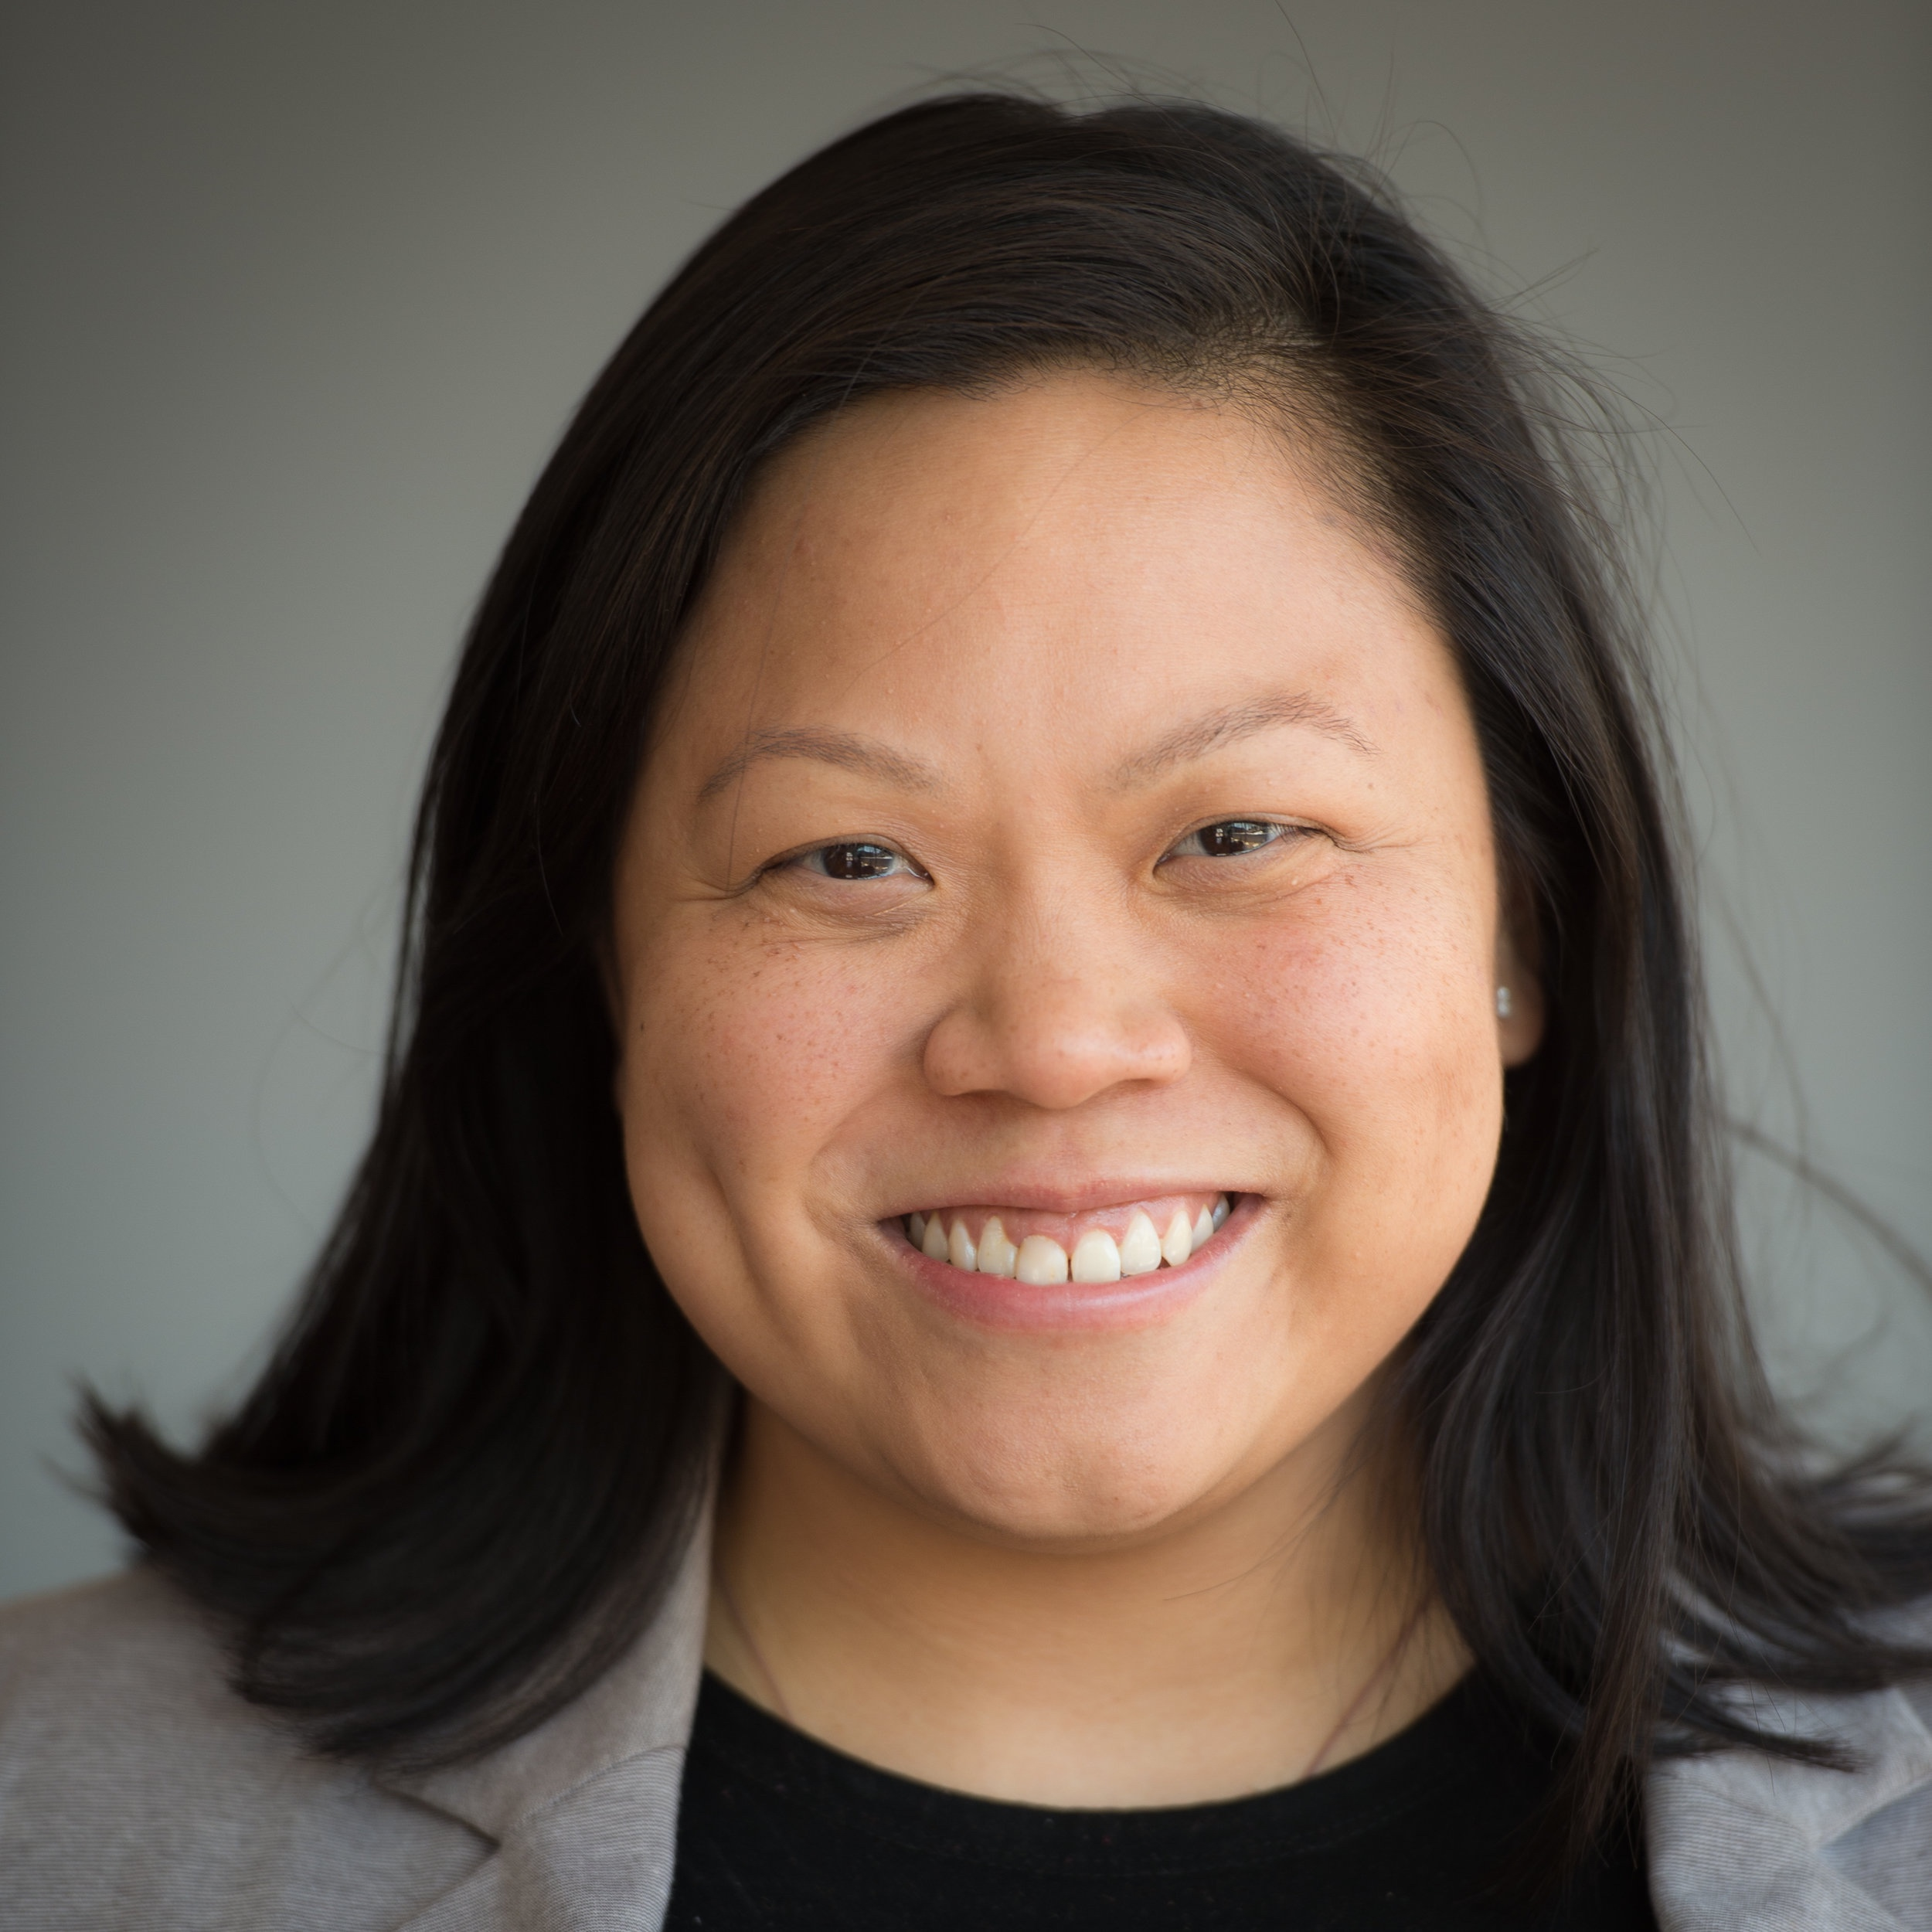 Vimala Phongsavanh - Washington, DCDirector of Programs and Community Engagement, Asian Pacific American Institute for Congressional Studies